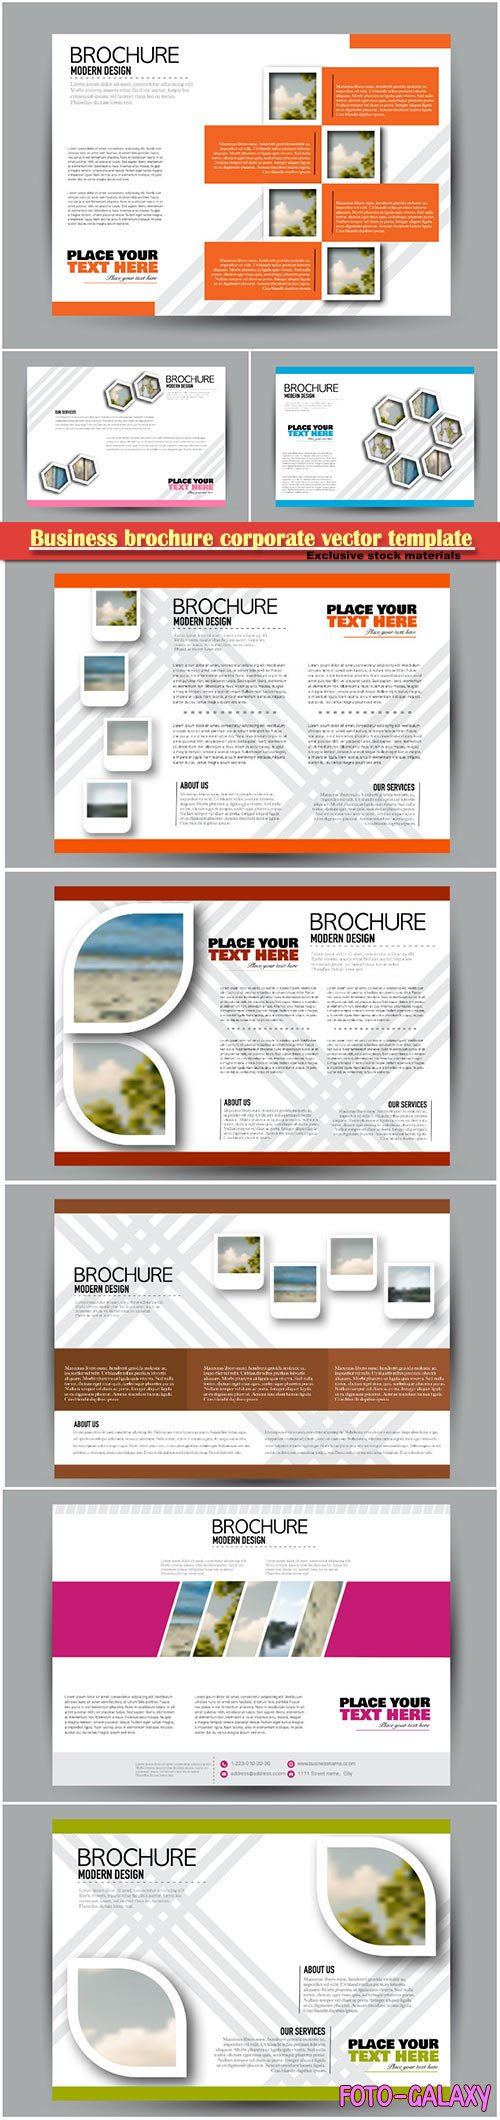 Business brochure corporate vector template, magazine flyer mockup # 16